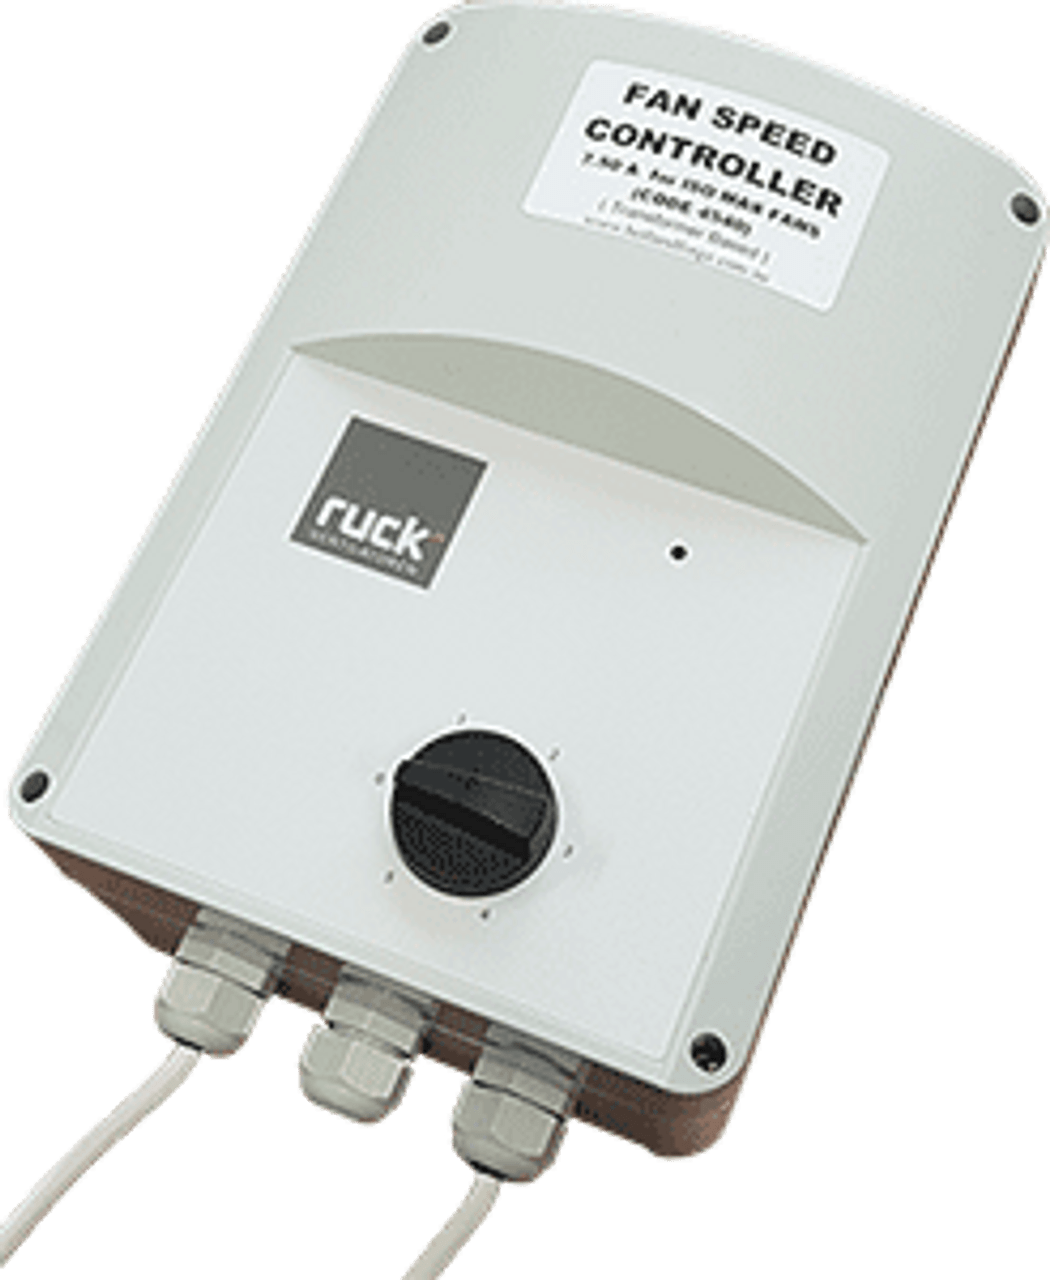 CAN FAN SPEED CONTROLLER 3.5 AMP FOR ISO-MAX & MAX FAN